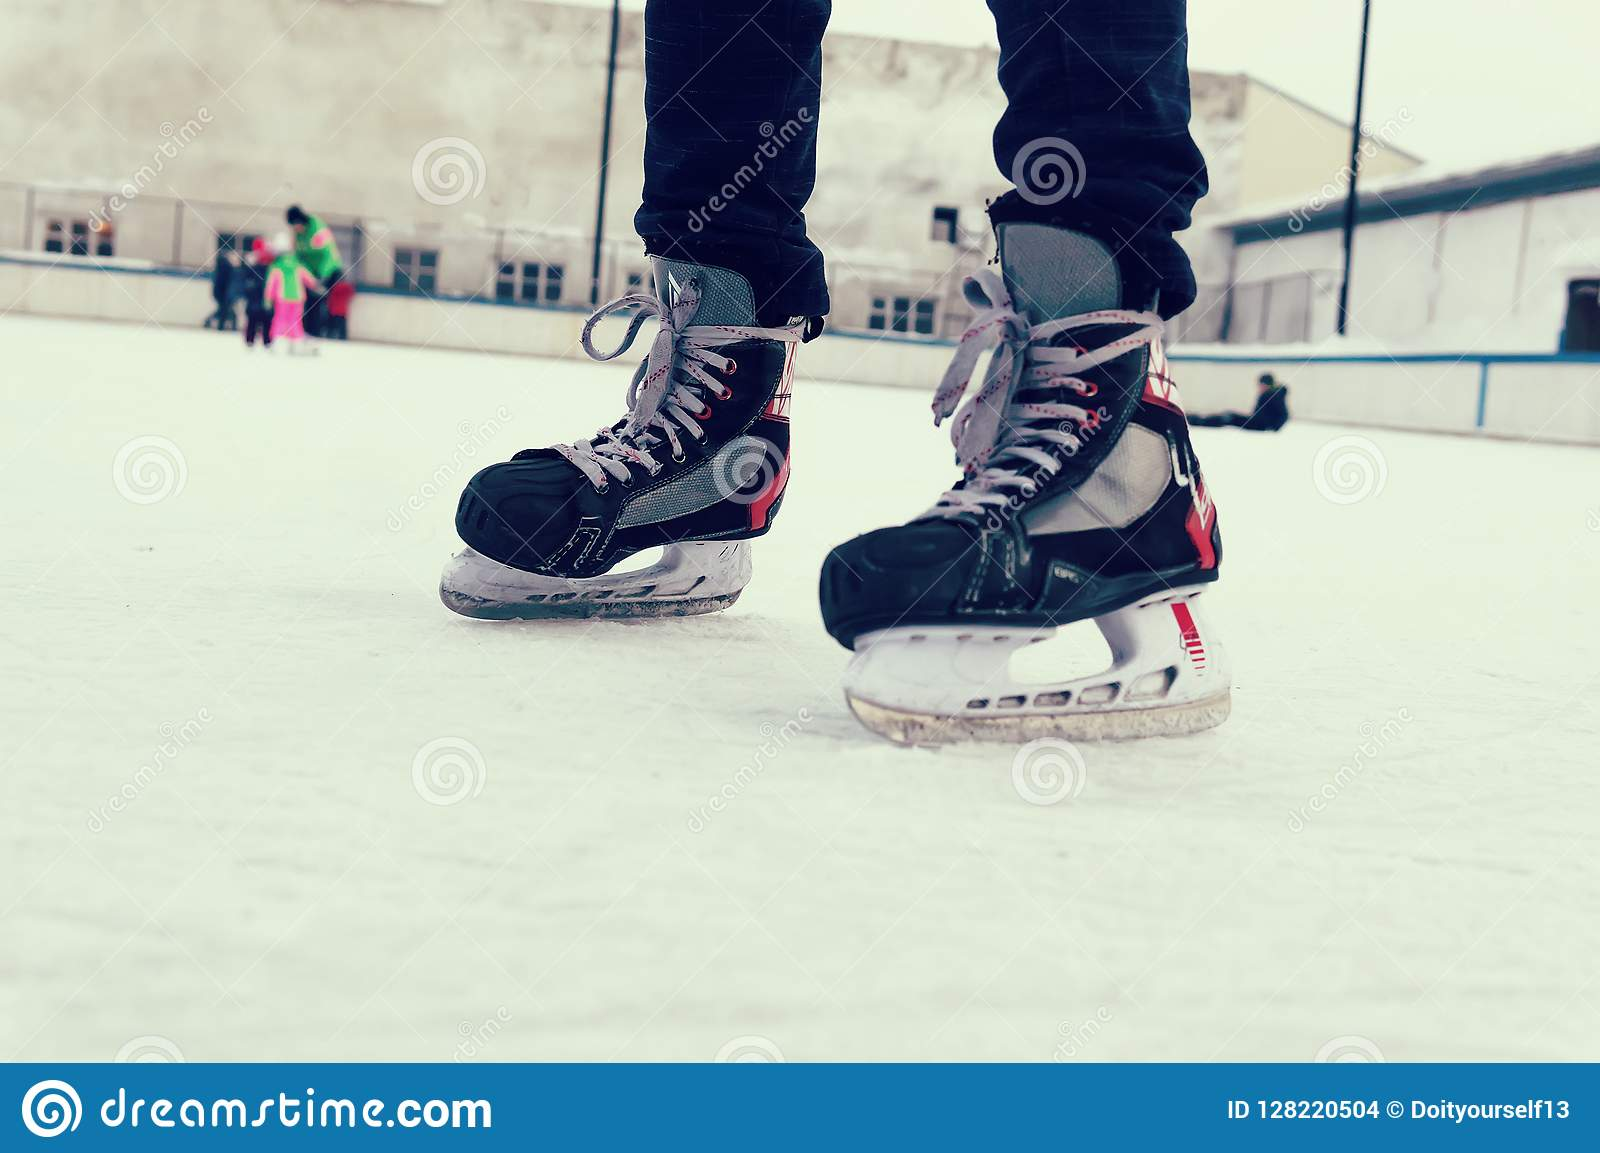 Feet On The Skates Of A Person Rolling On The Ice Rink Stock Photo